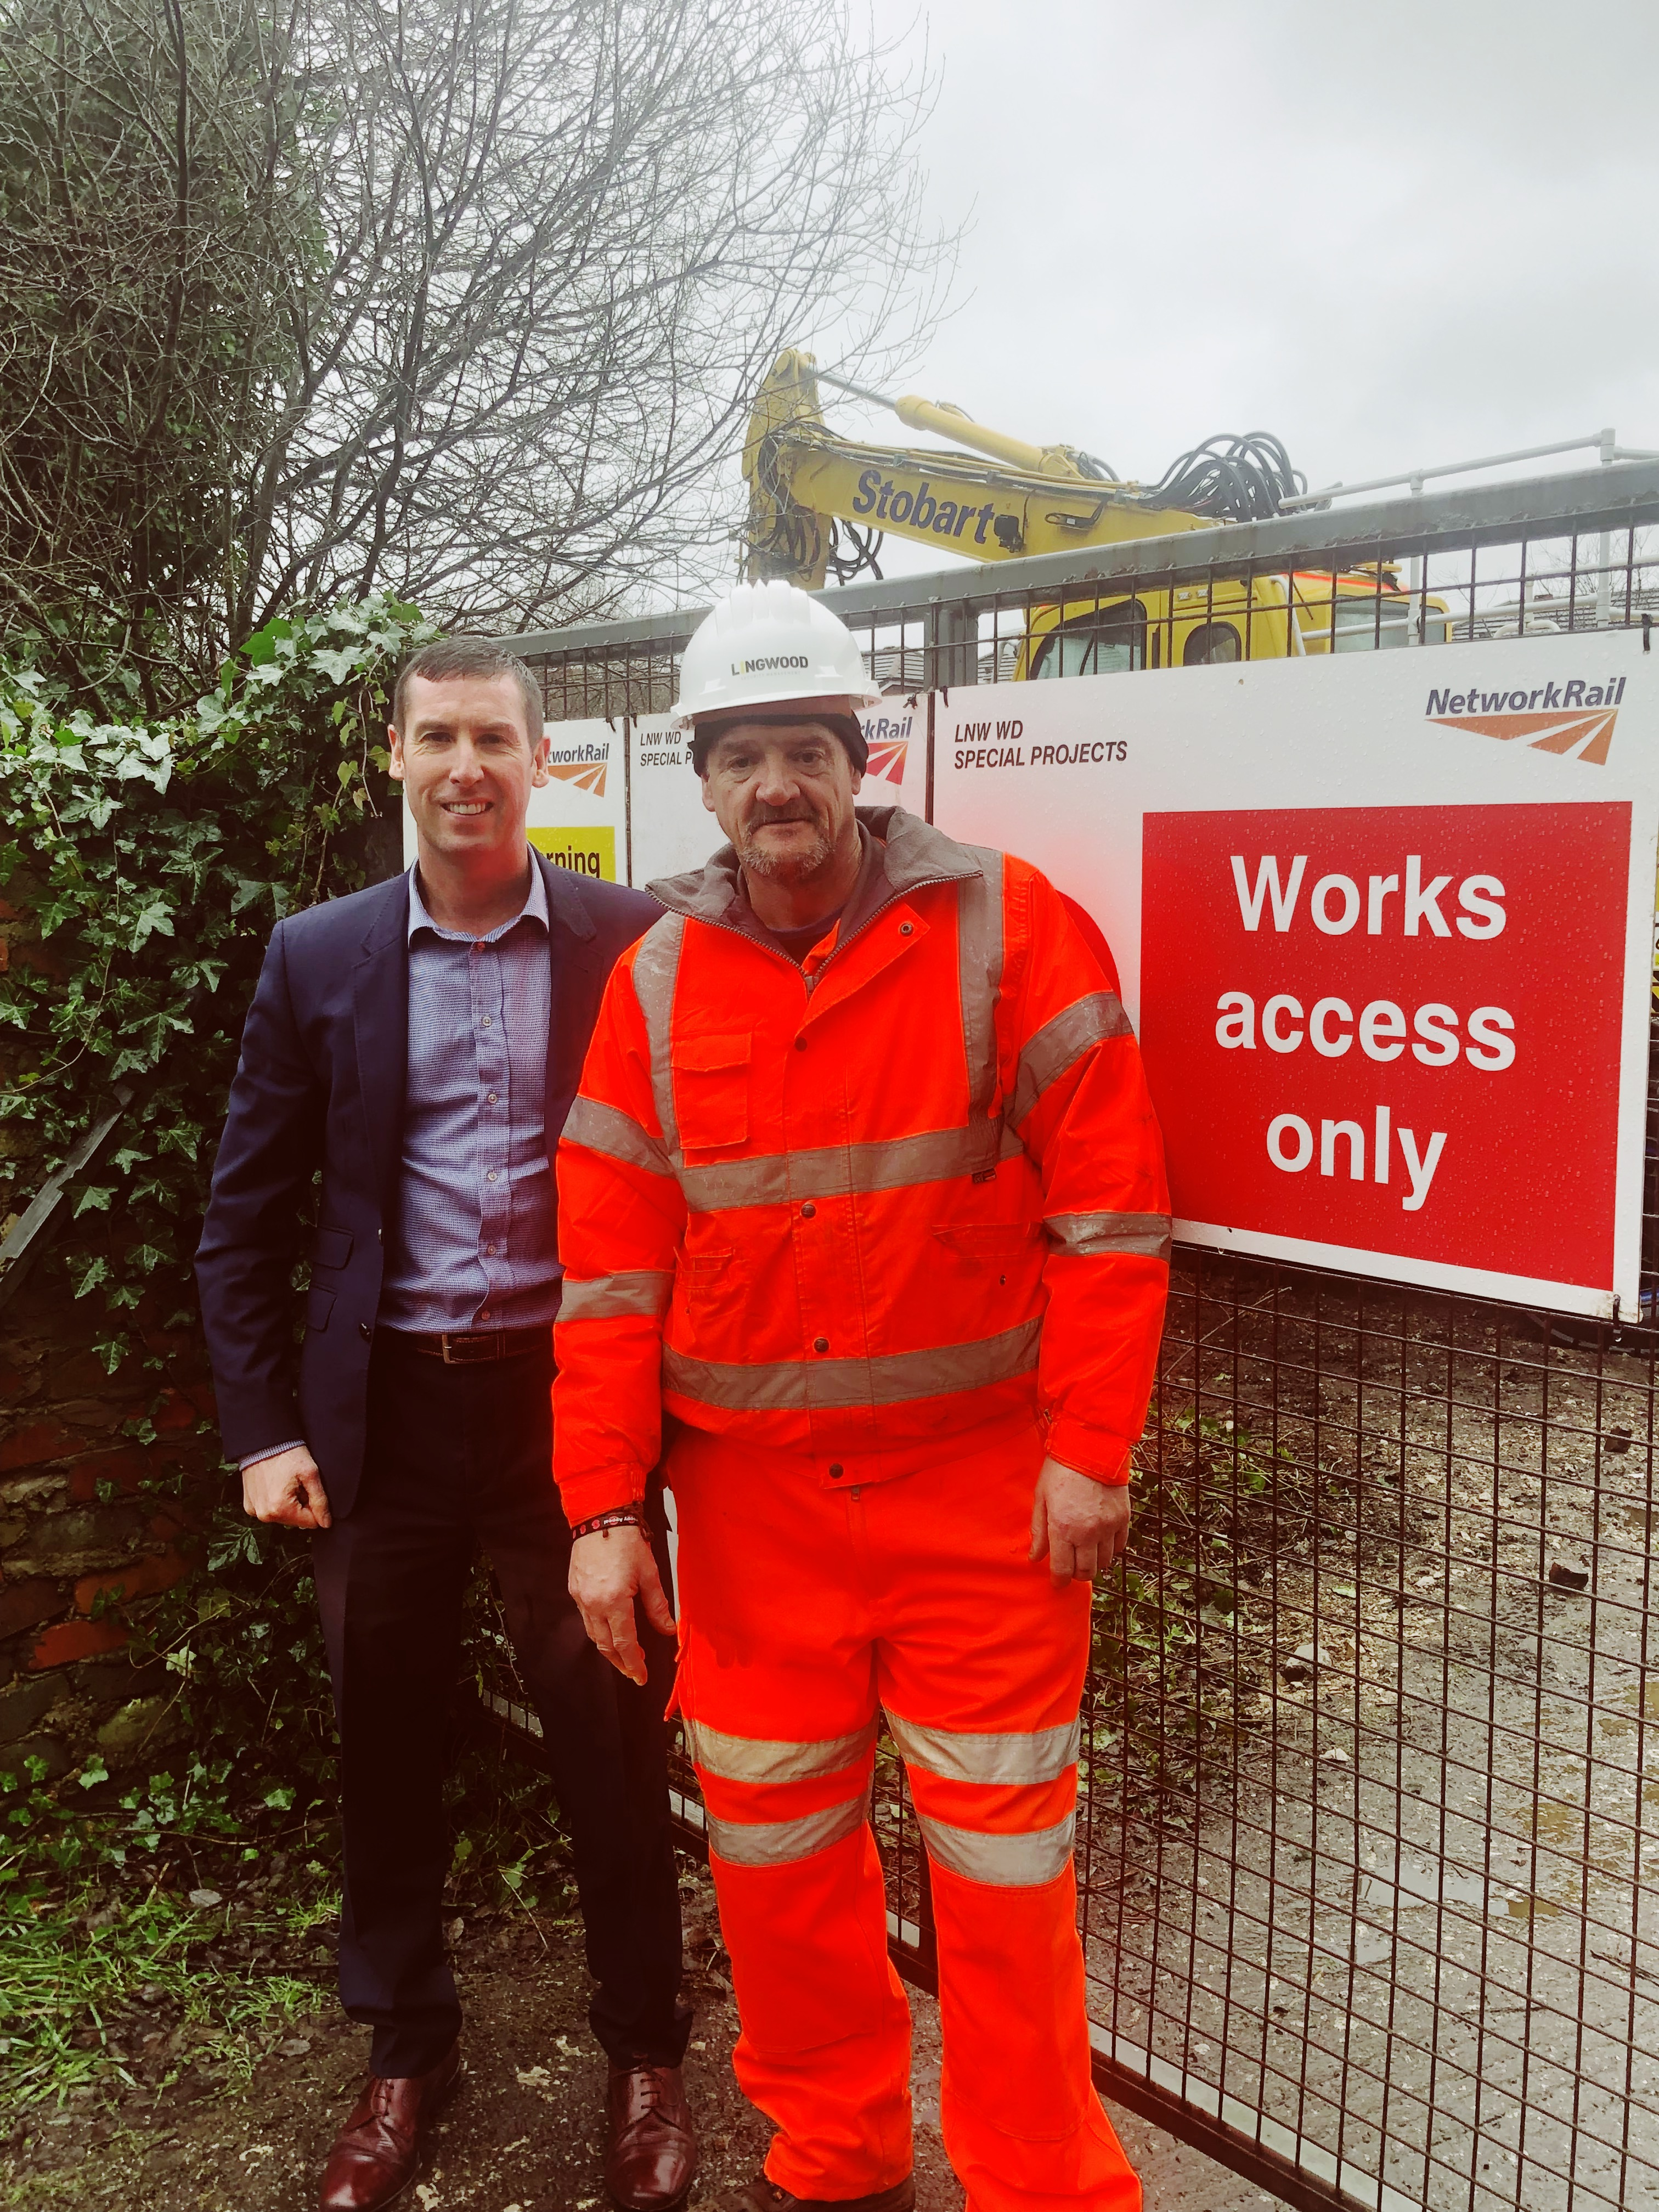 Alan Lingwood carrying out a site visit on a Network Rail project